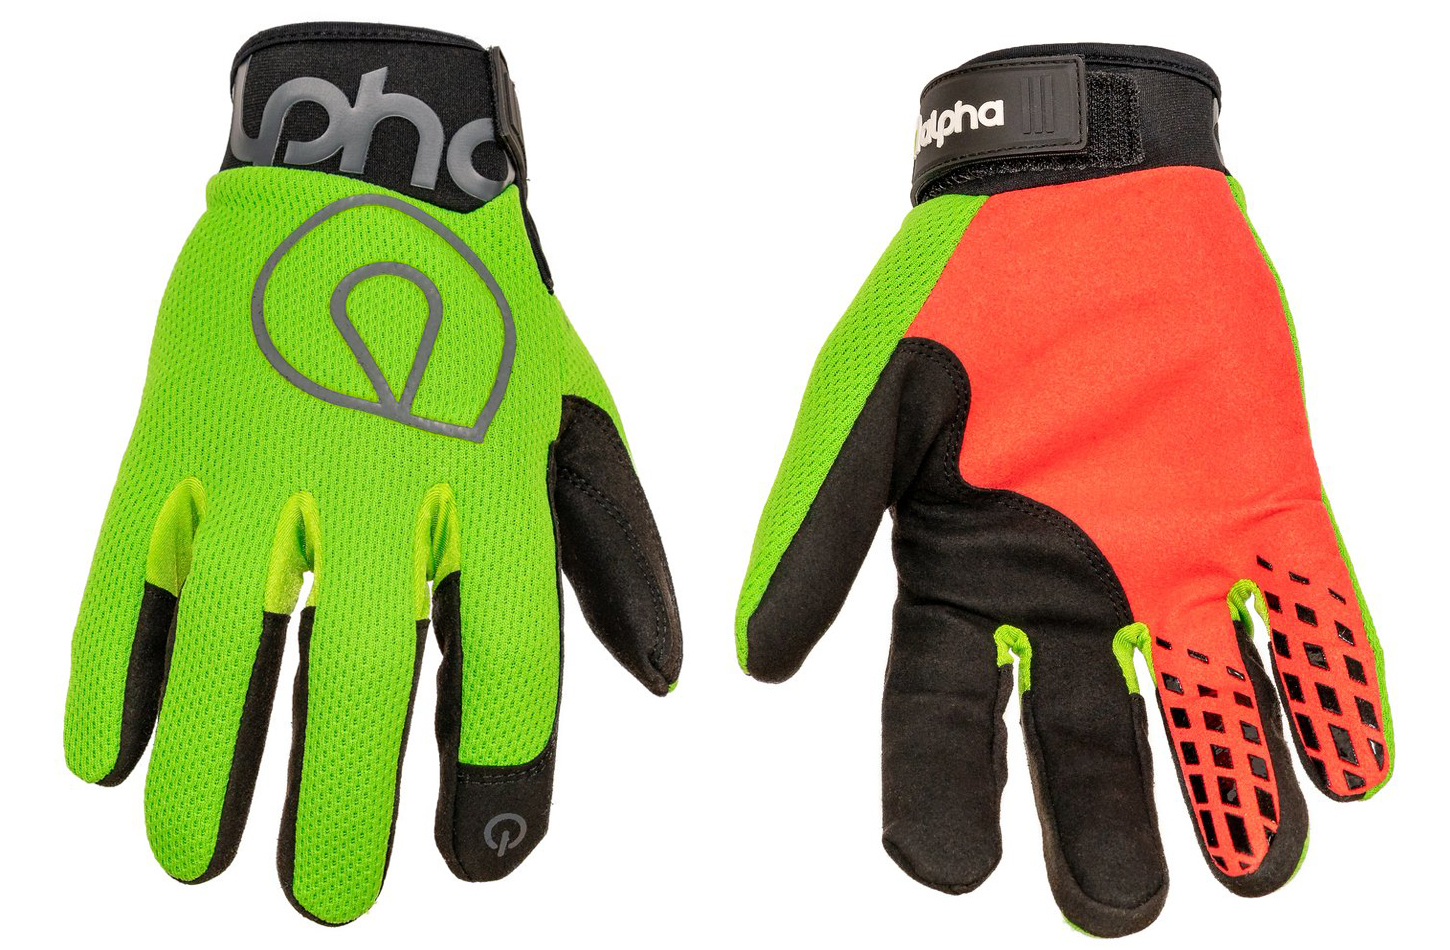 Alpha Gloves AG02-04-L Gloves, Shop, The Standard, Hook and Loop Closure, Neoprene Cuff, Mesh Top, Touch Screen Capable, Synthetic Leather Palm, Fluorescent Green, Large, Pair